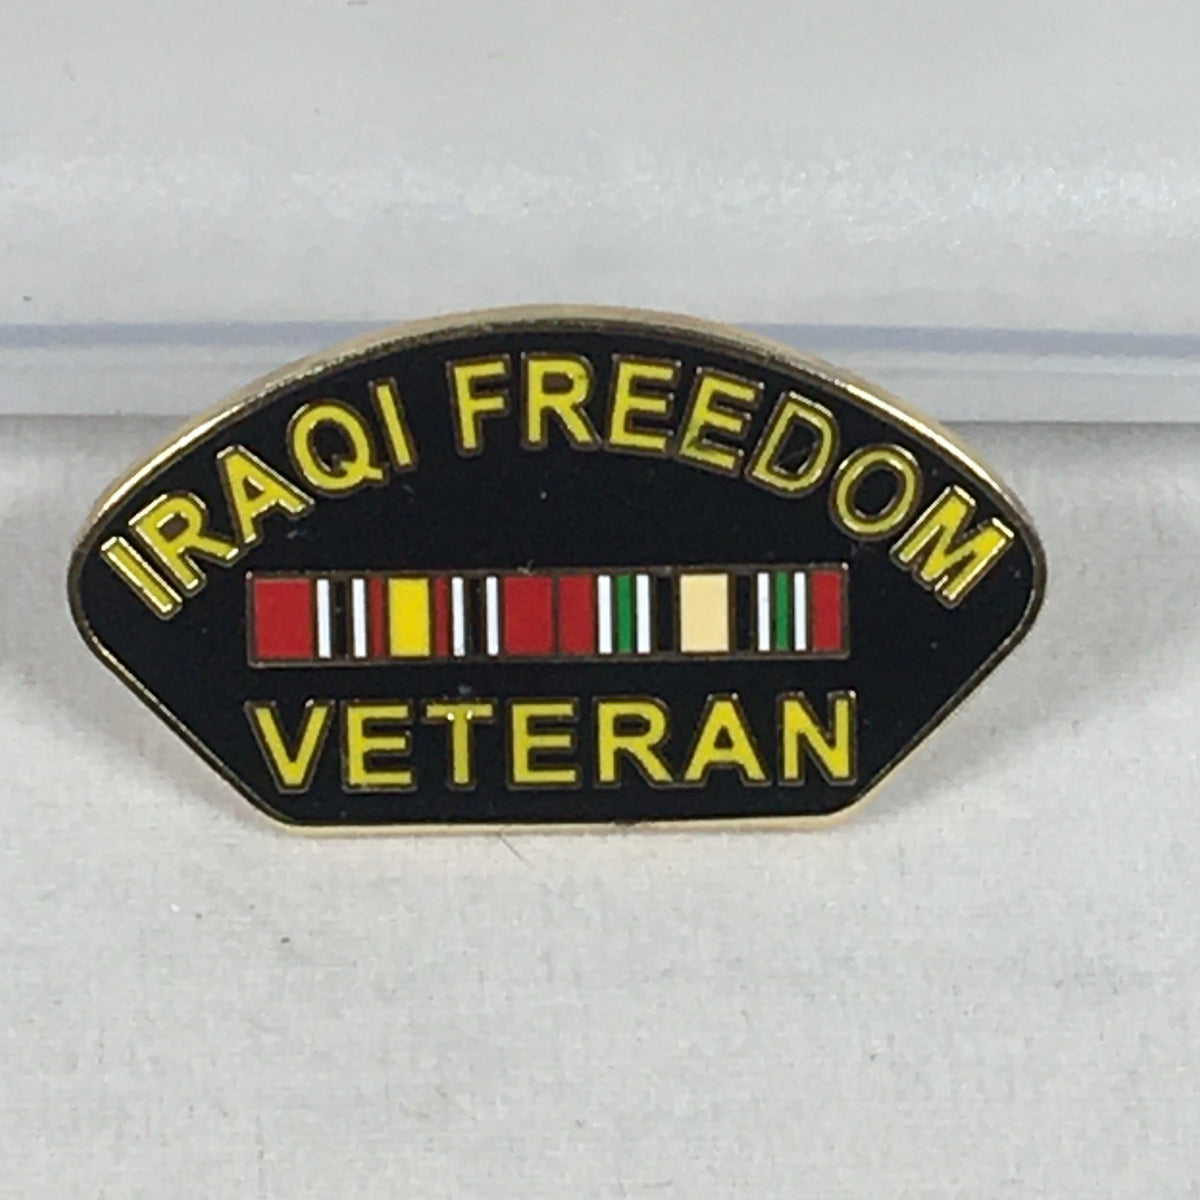 Iraqi Freedom Veteran Pin